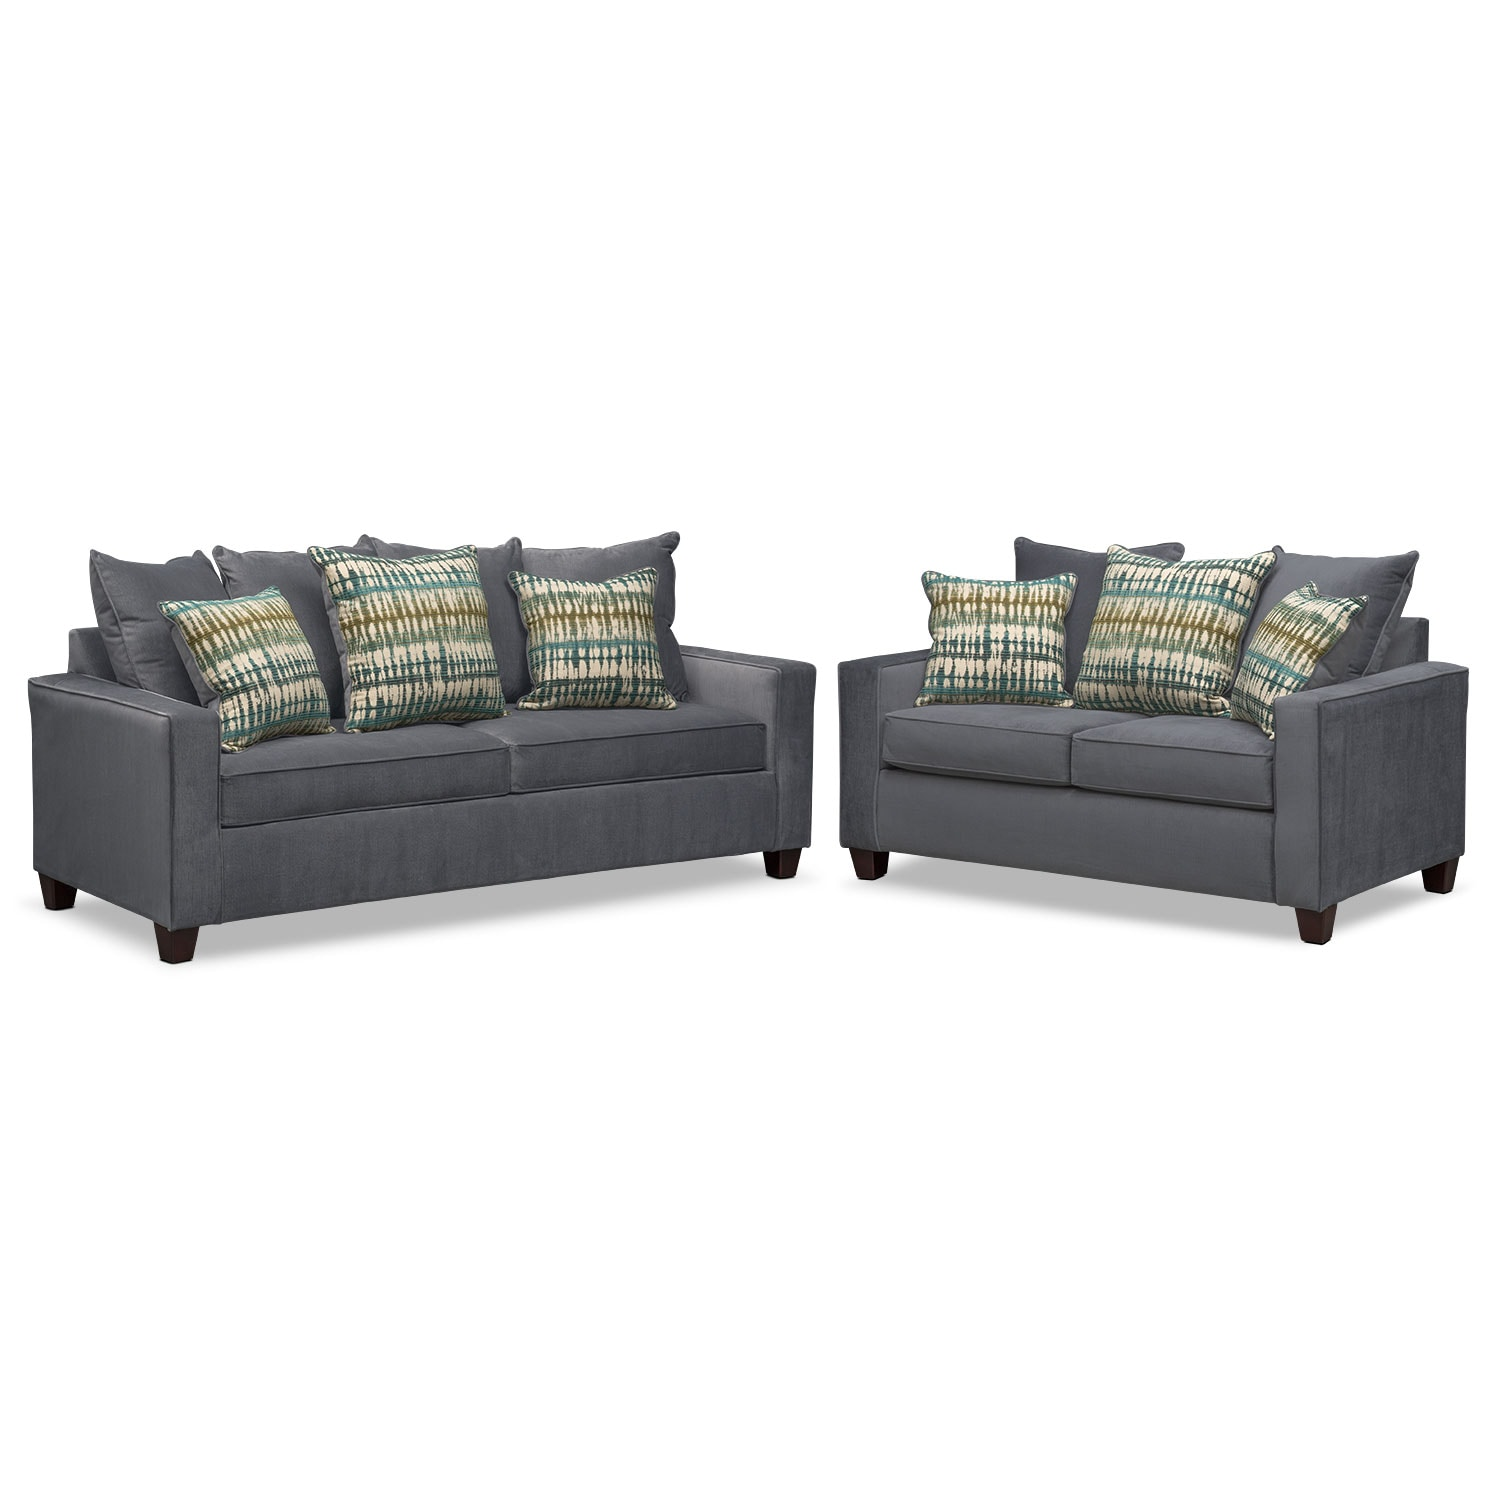 Living Room Furniture - Bryden Queen Sleeper Sofa and Loveseat Set